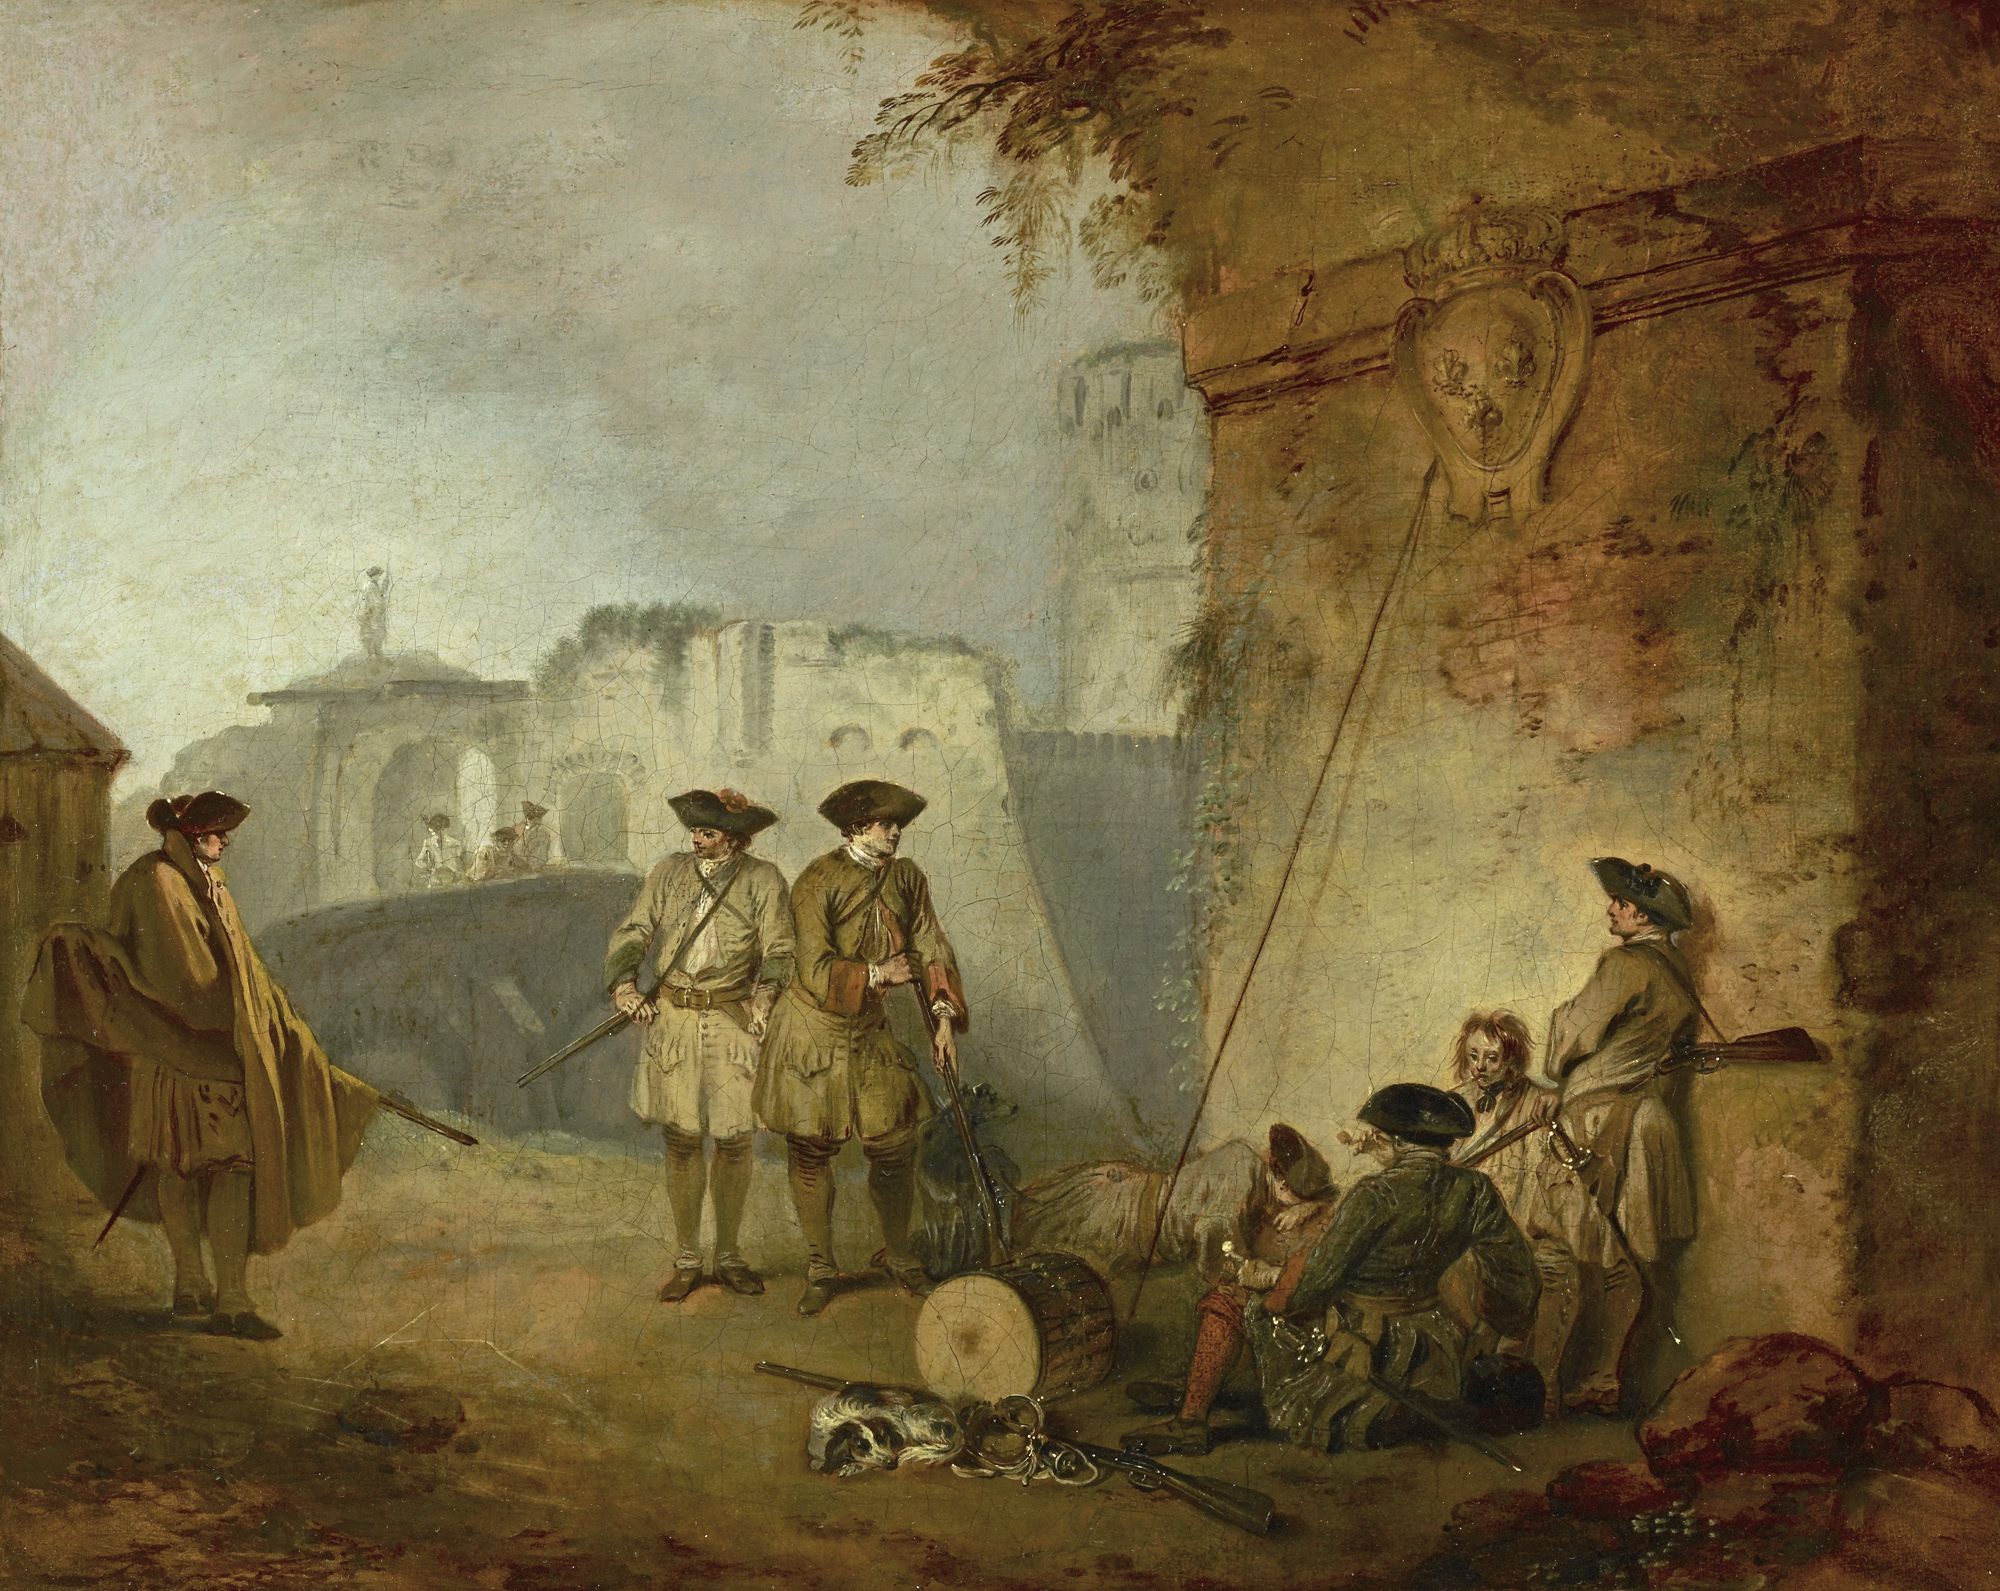 """Watteau's Soldiers: Scenes of Military Life in Eighteenth-Century France"""